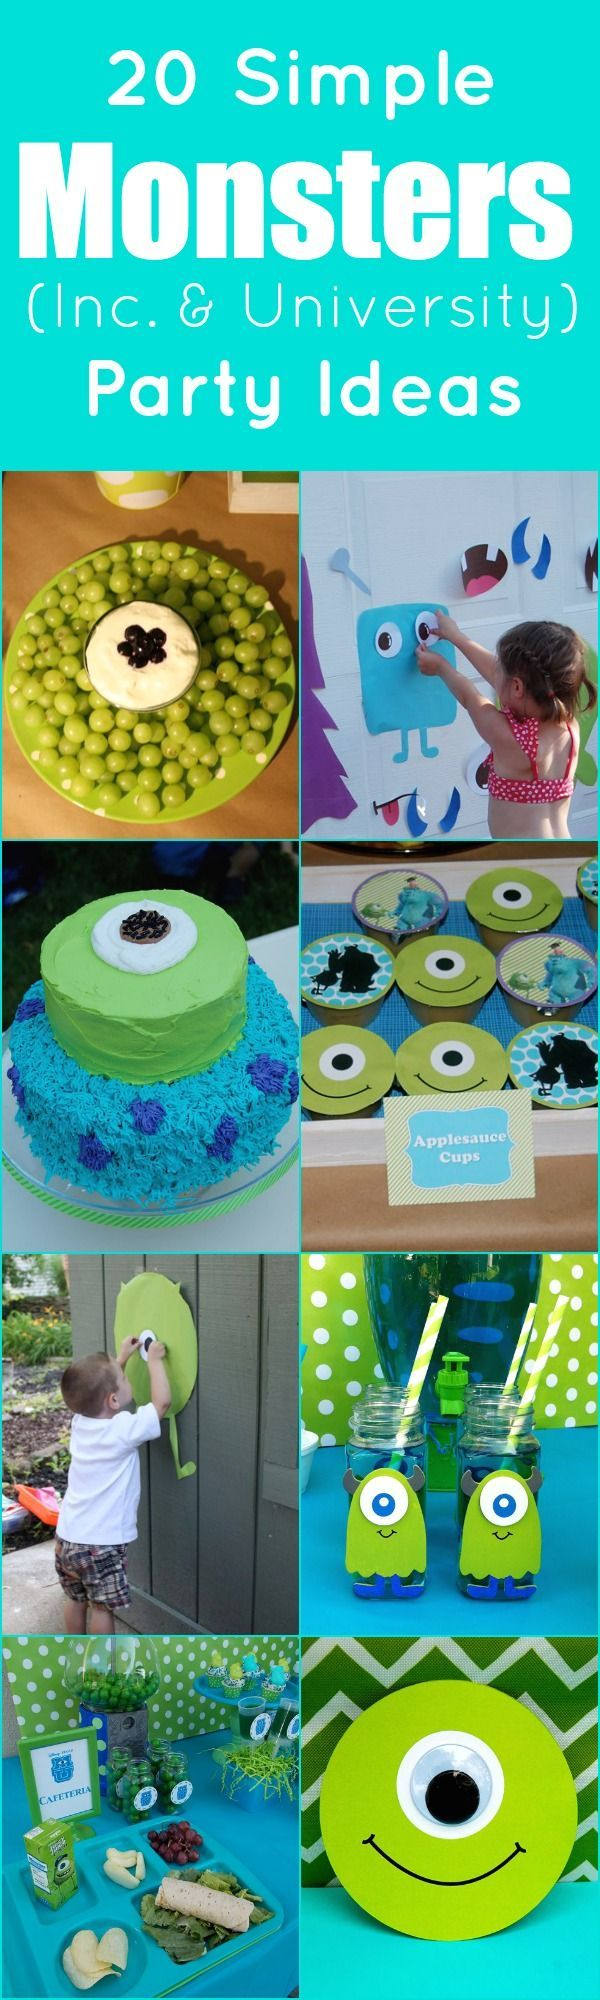 20 Simple Monsters Inc and University Party Ideas